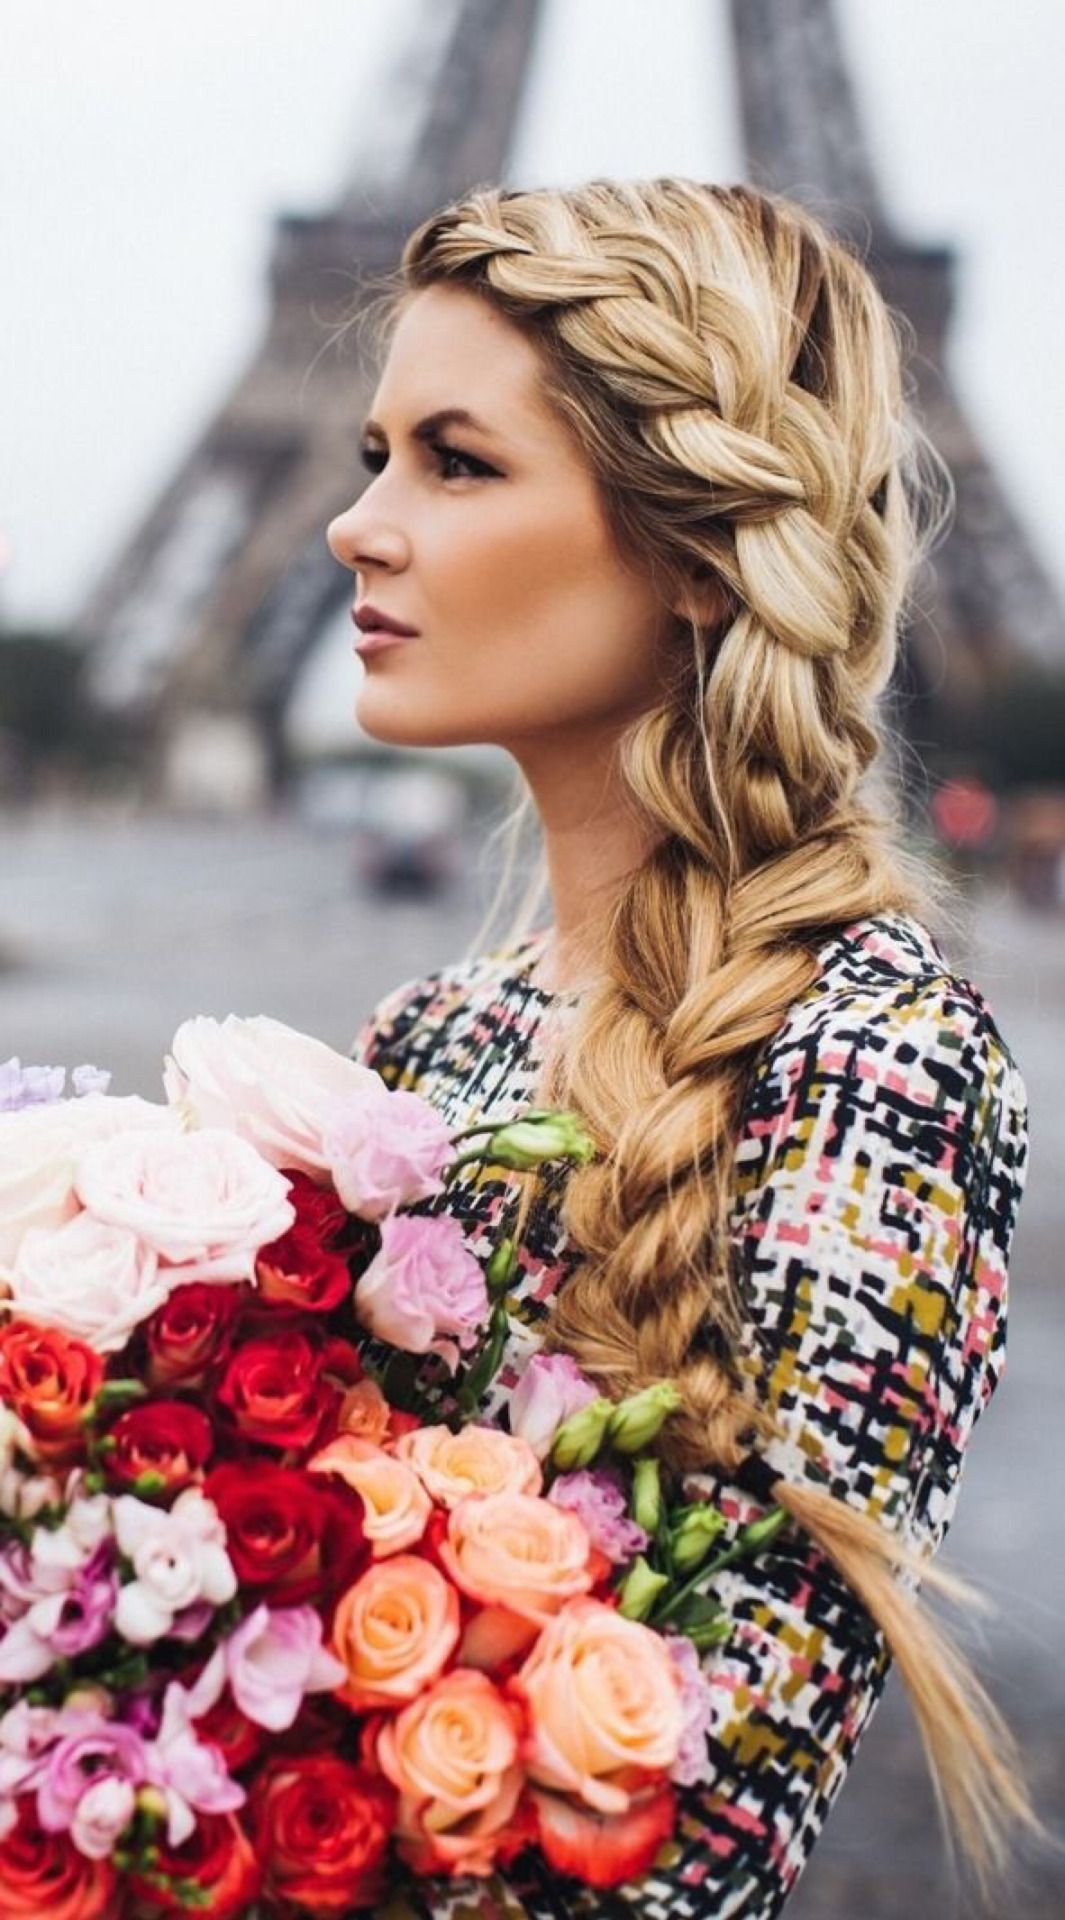 Pin by aoife lane on projects to try pinterest hair style hair